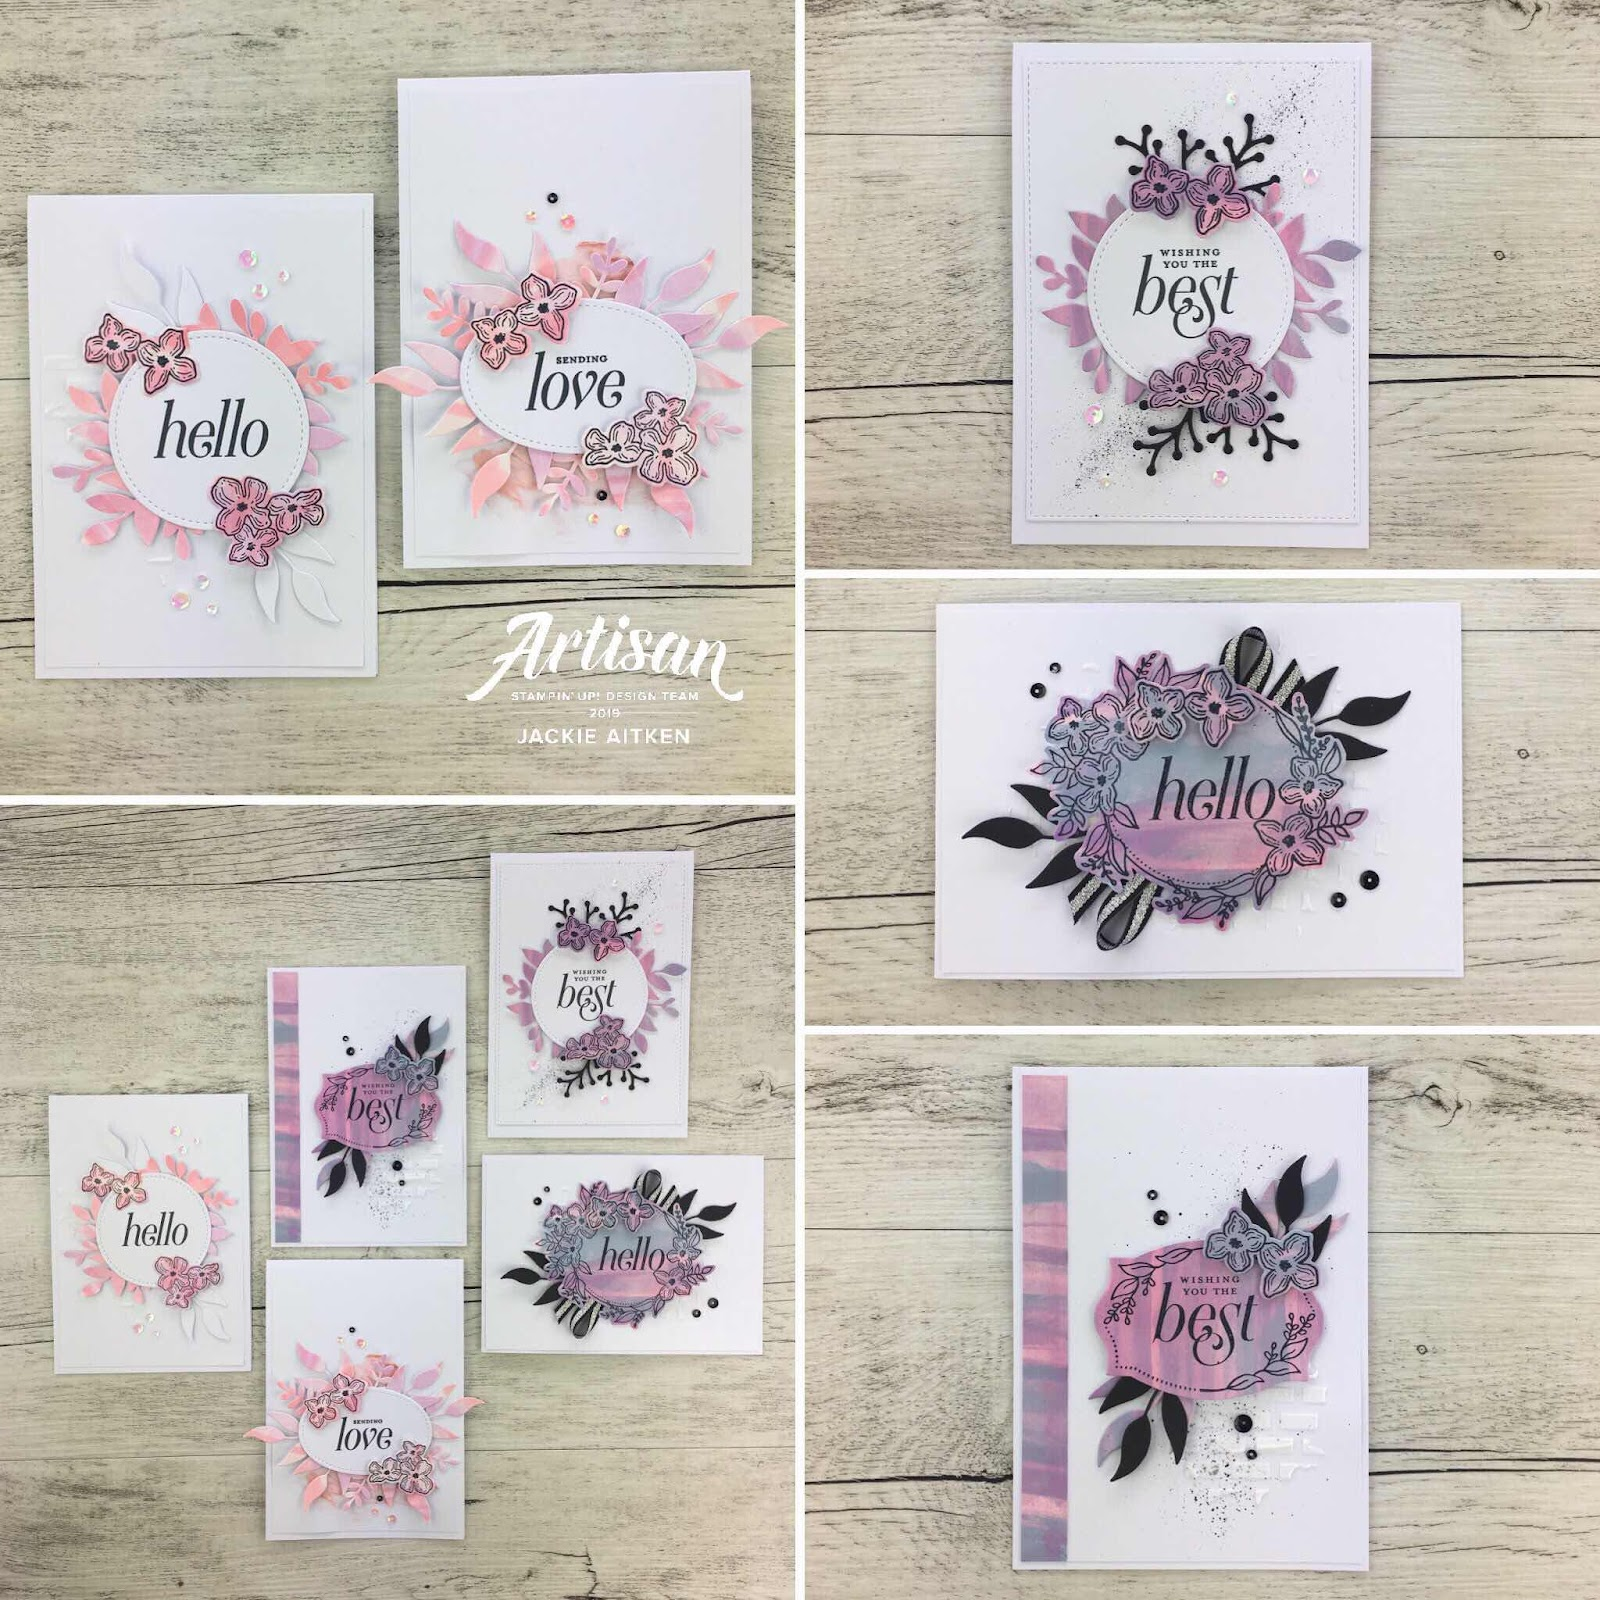 jaxxcraftycreations, handmade cards, Floral Frames, Glossy Card, Stampin' Up!, Embossing Paste, Stampin' Blends, Stamping Sunday Blog Hop, Stamping Techniques,